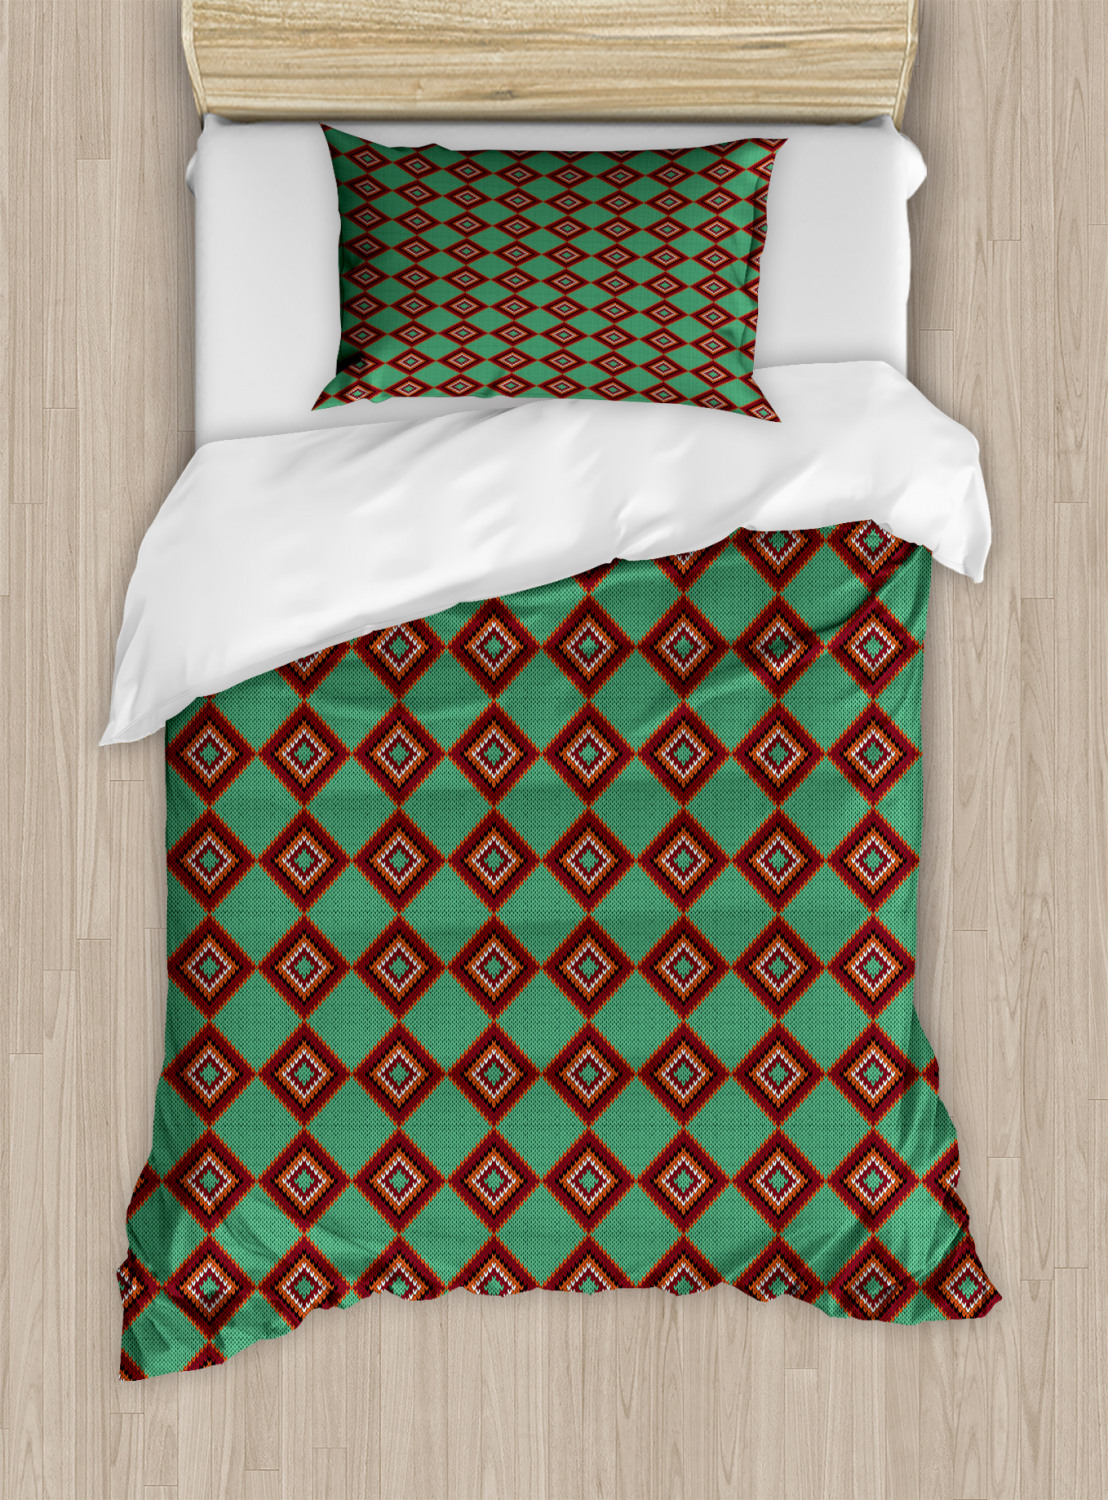 Timeless-Oriental-Duvet-Cover-Set-Twin-Queen-King-Sizes-with-Pillow-Shams thumbnail 43